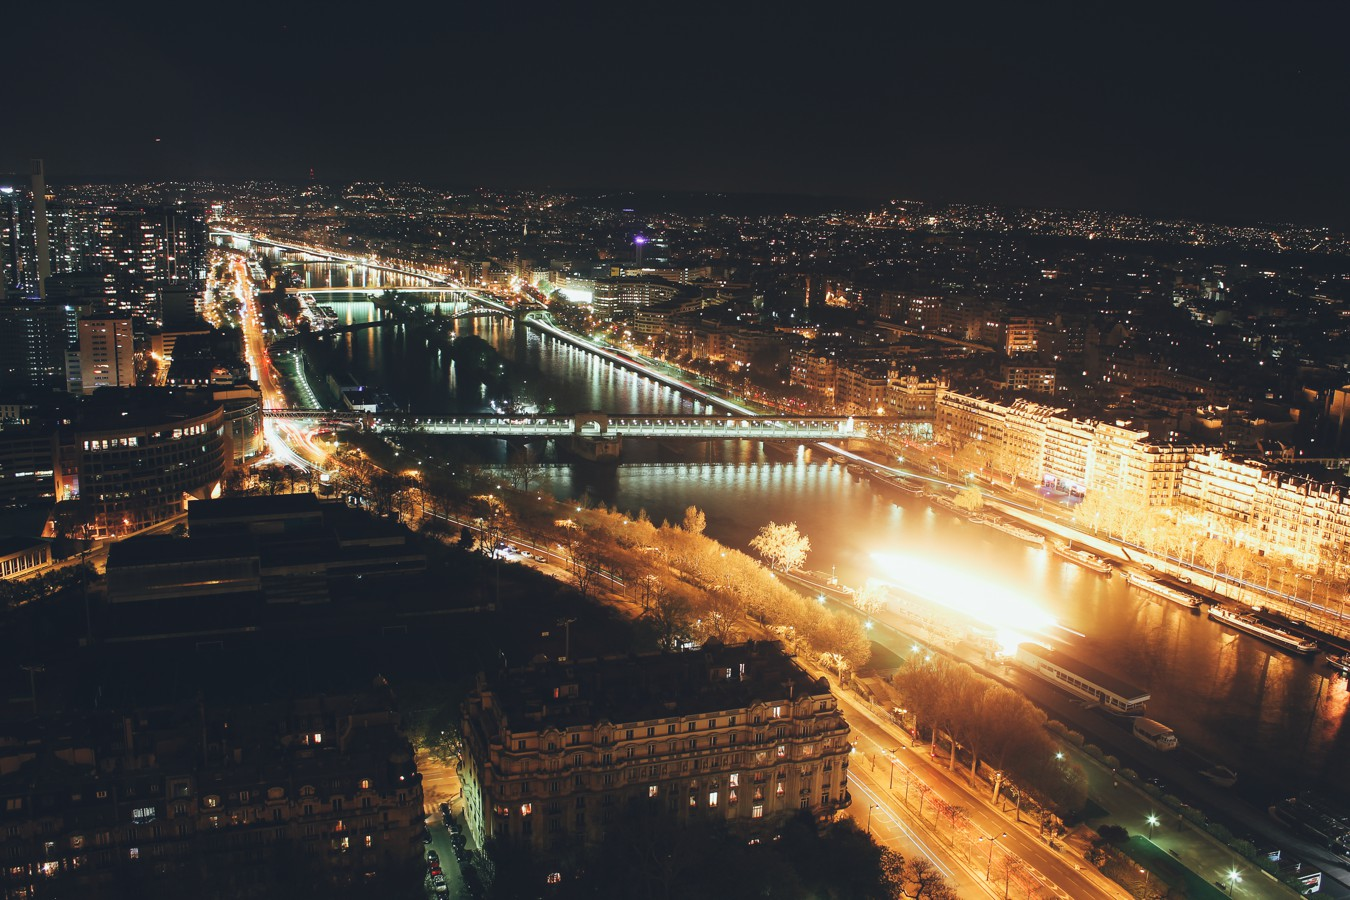 Things to do in Paris - Take in the view from the top of the Eiffel Tower (11)